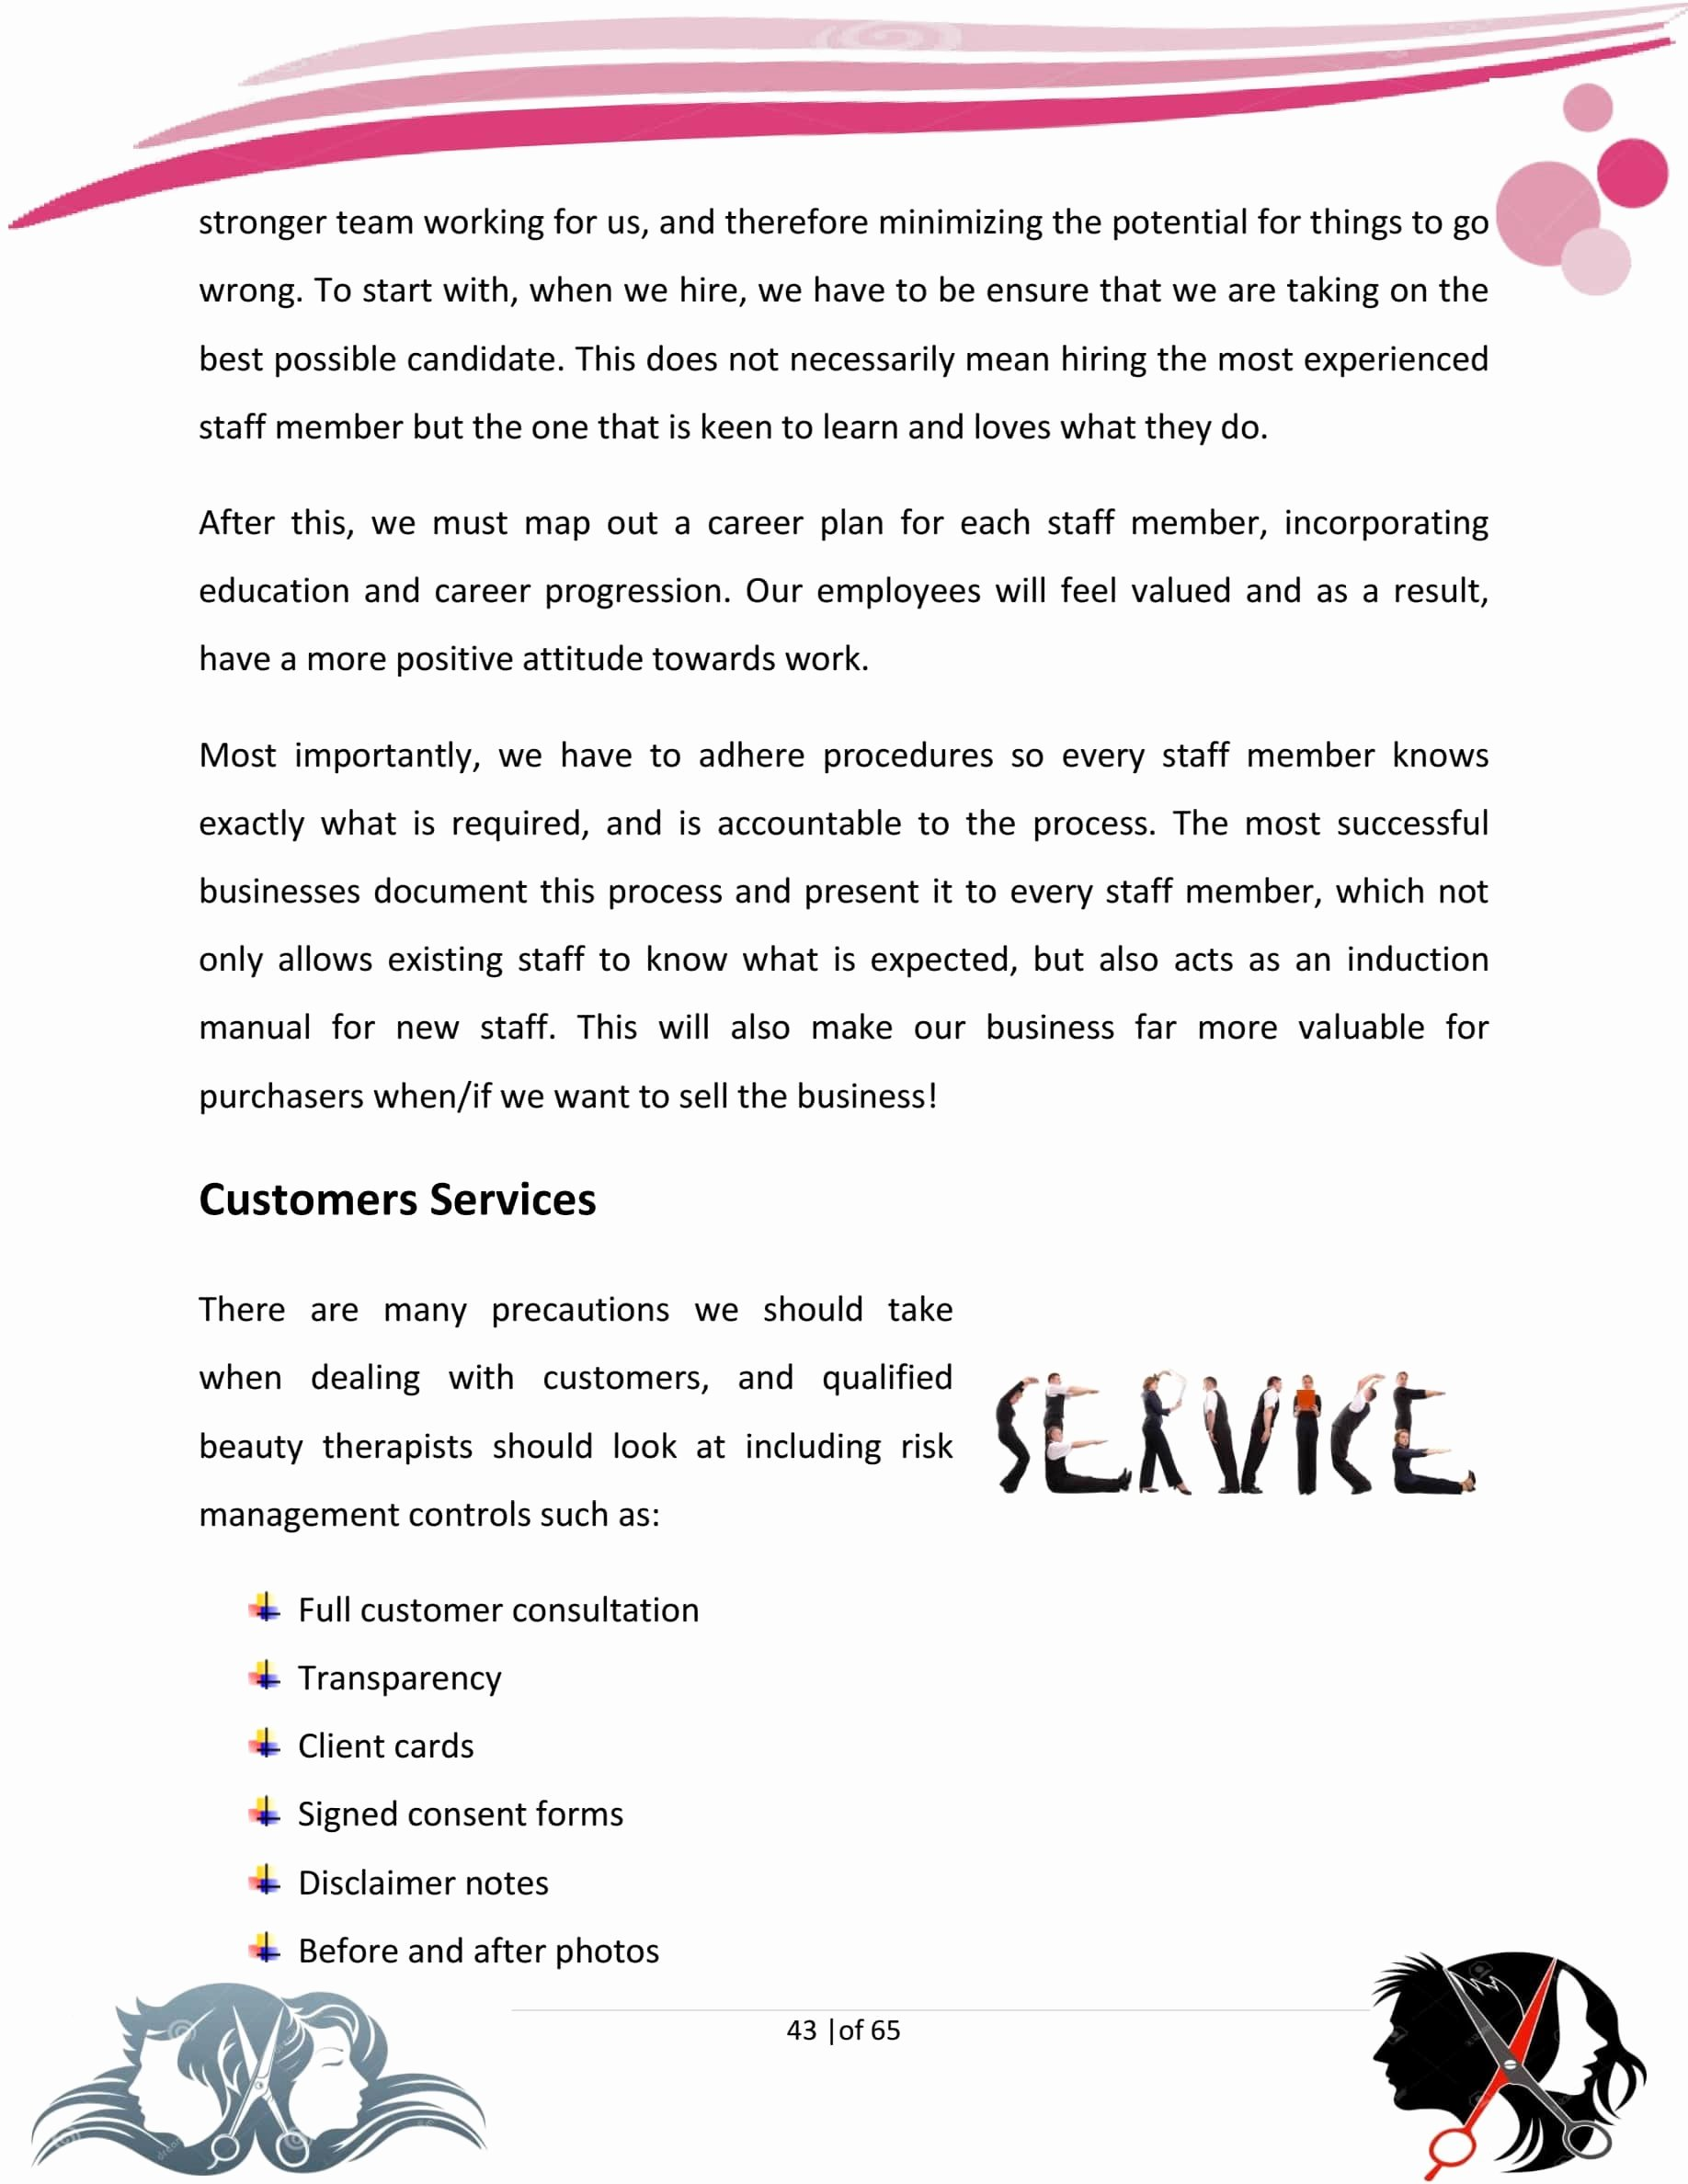 Hair Salon Business Plans Inspirational Hair Salon Business Plan Template Sample Pages Black Box